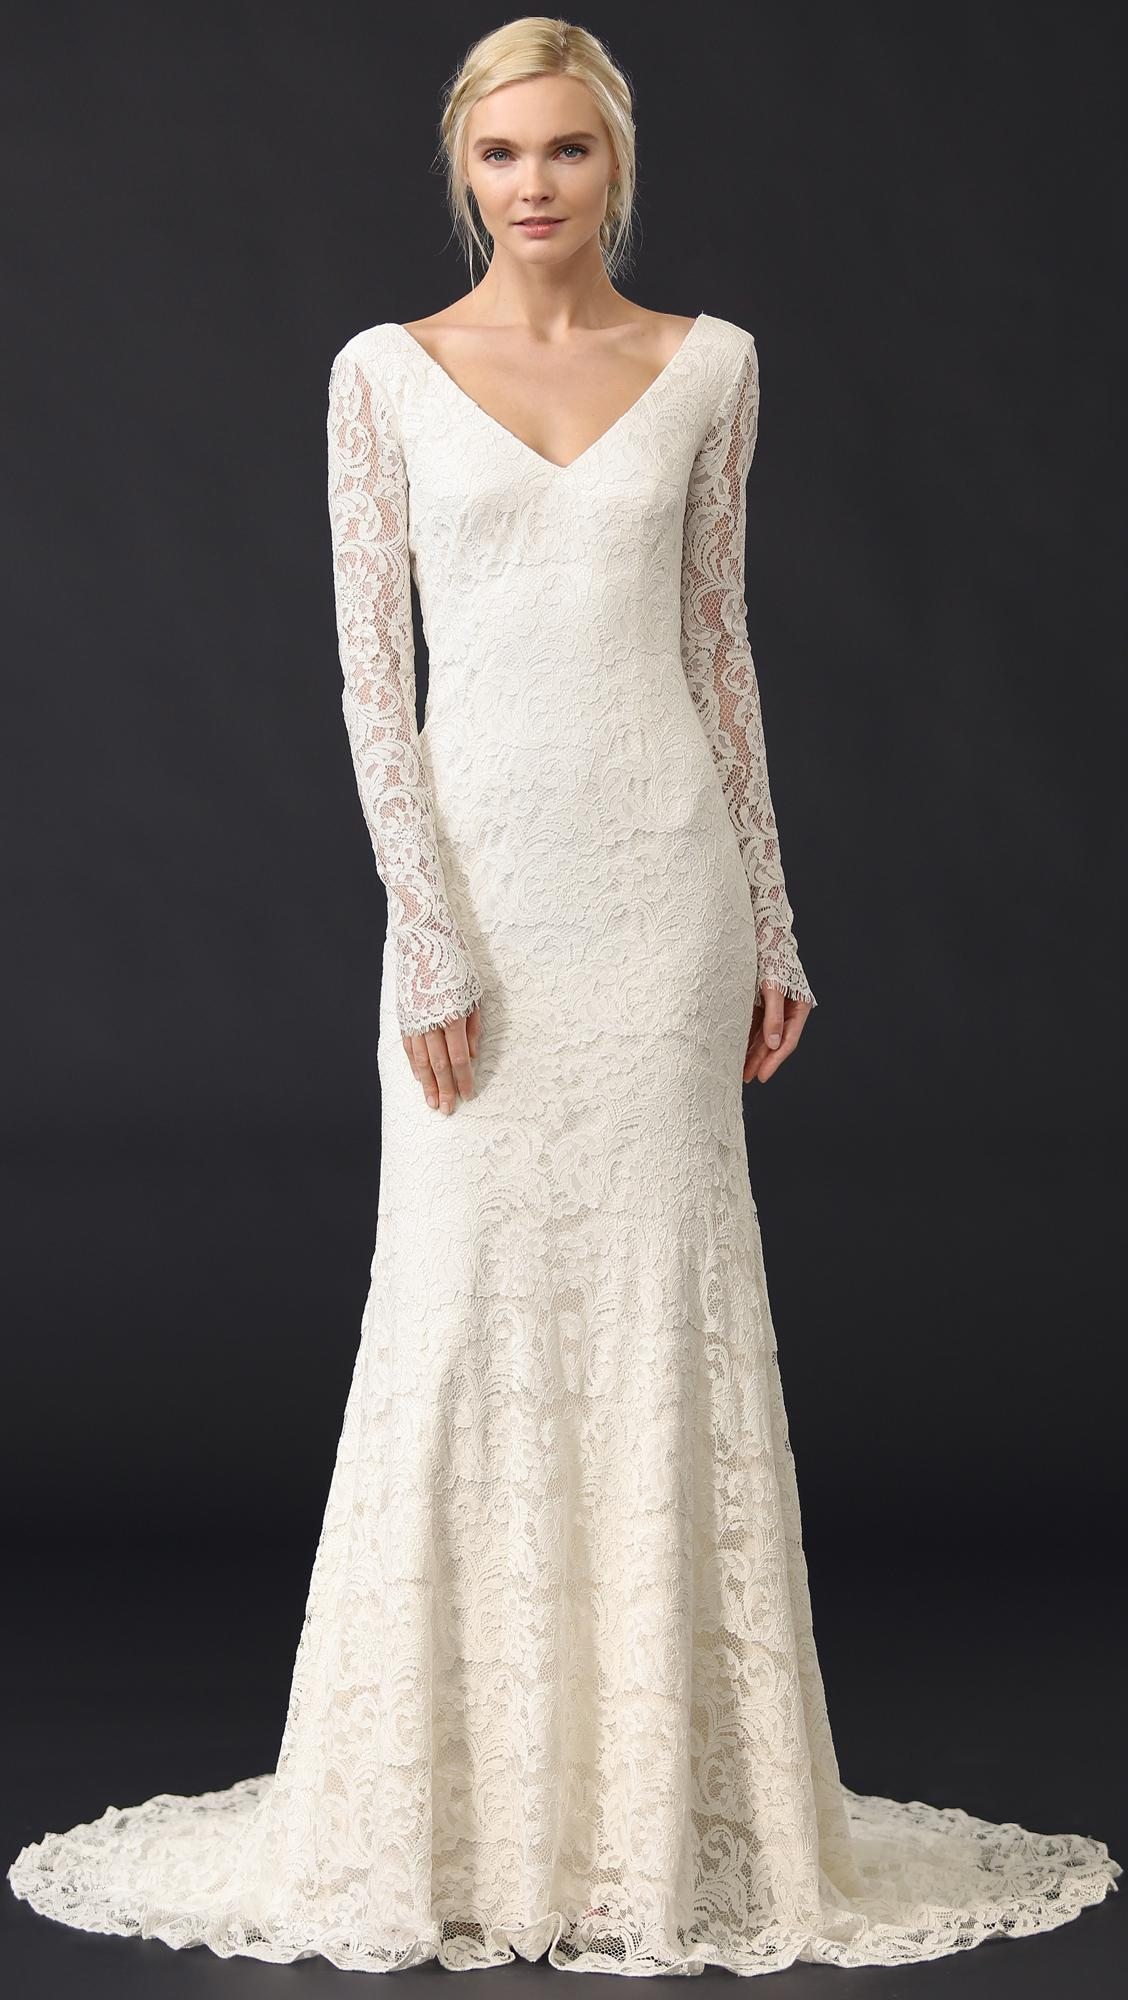 Lyst - Theia Nicole Lace Gown in White - Save 30.033444816053517%